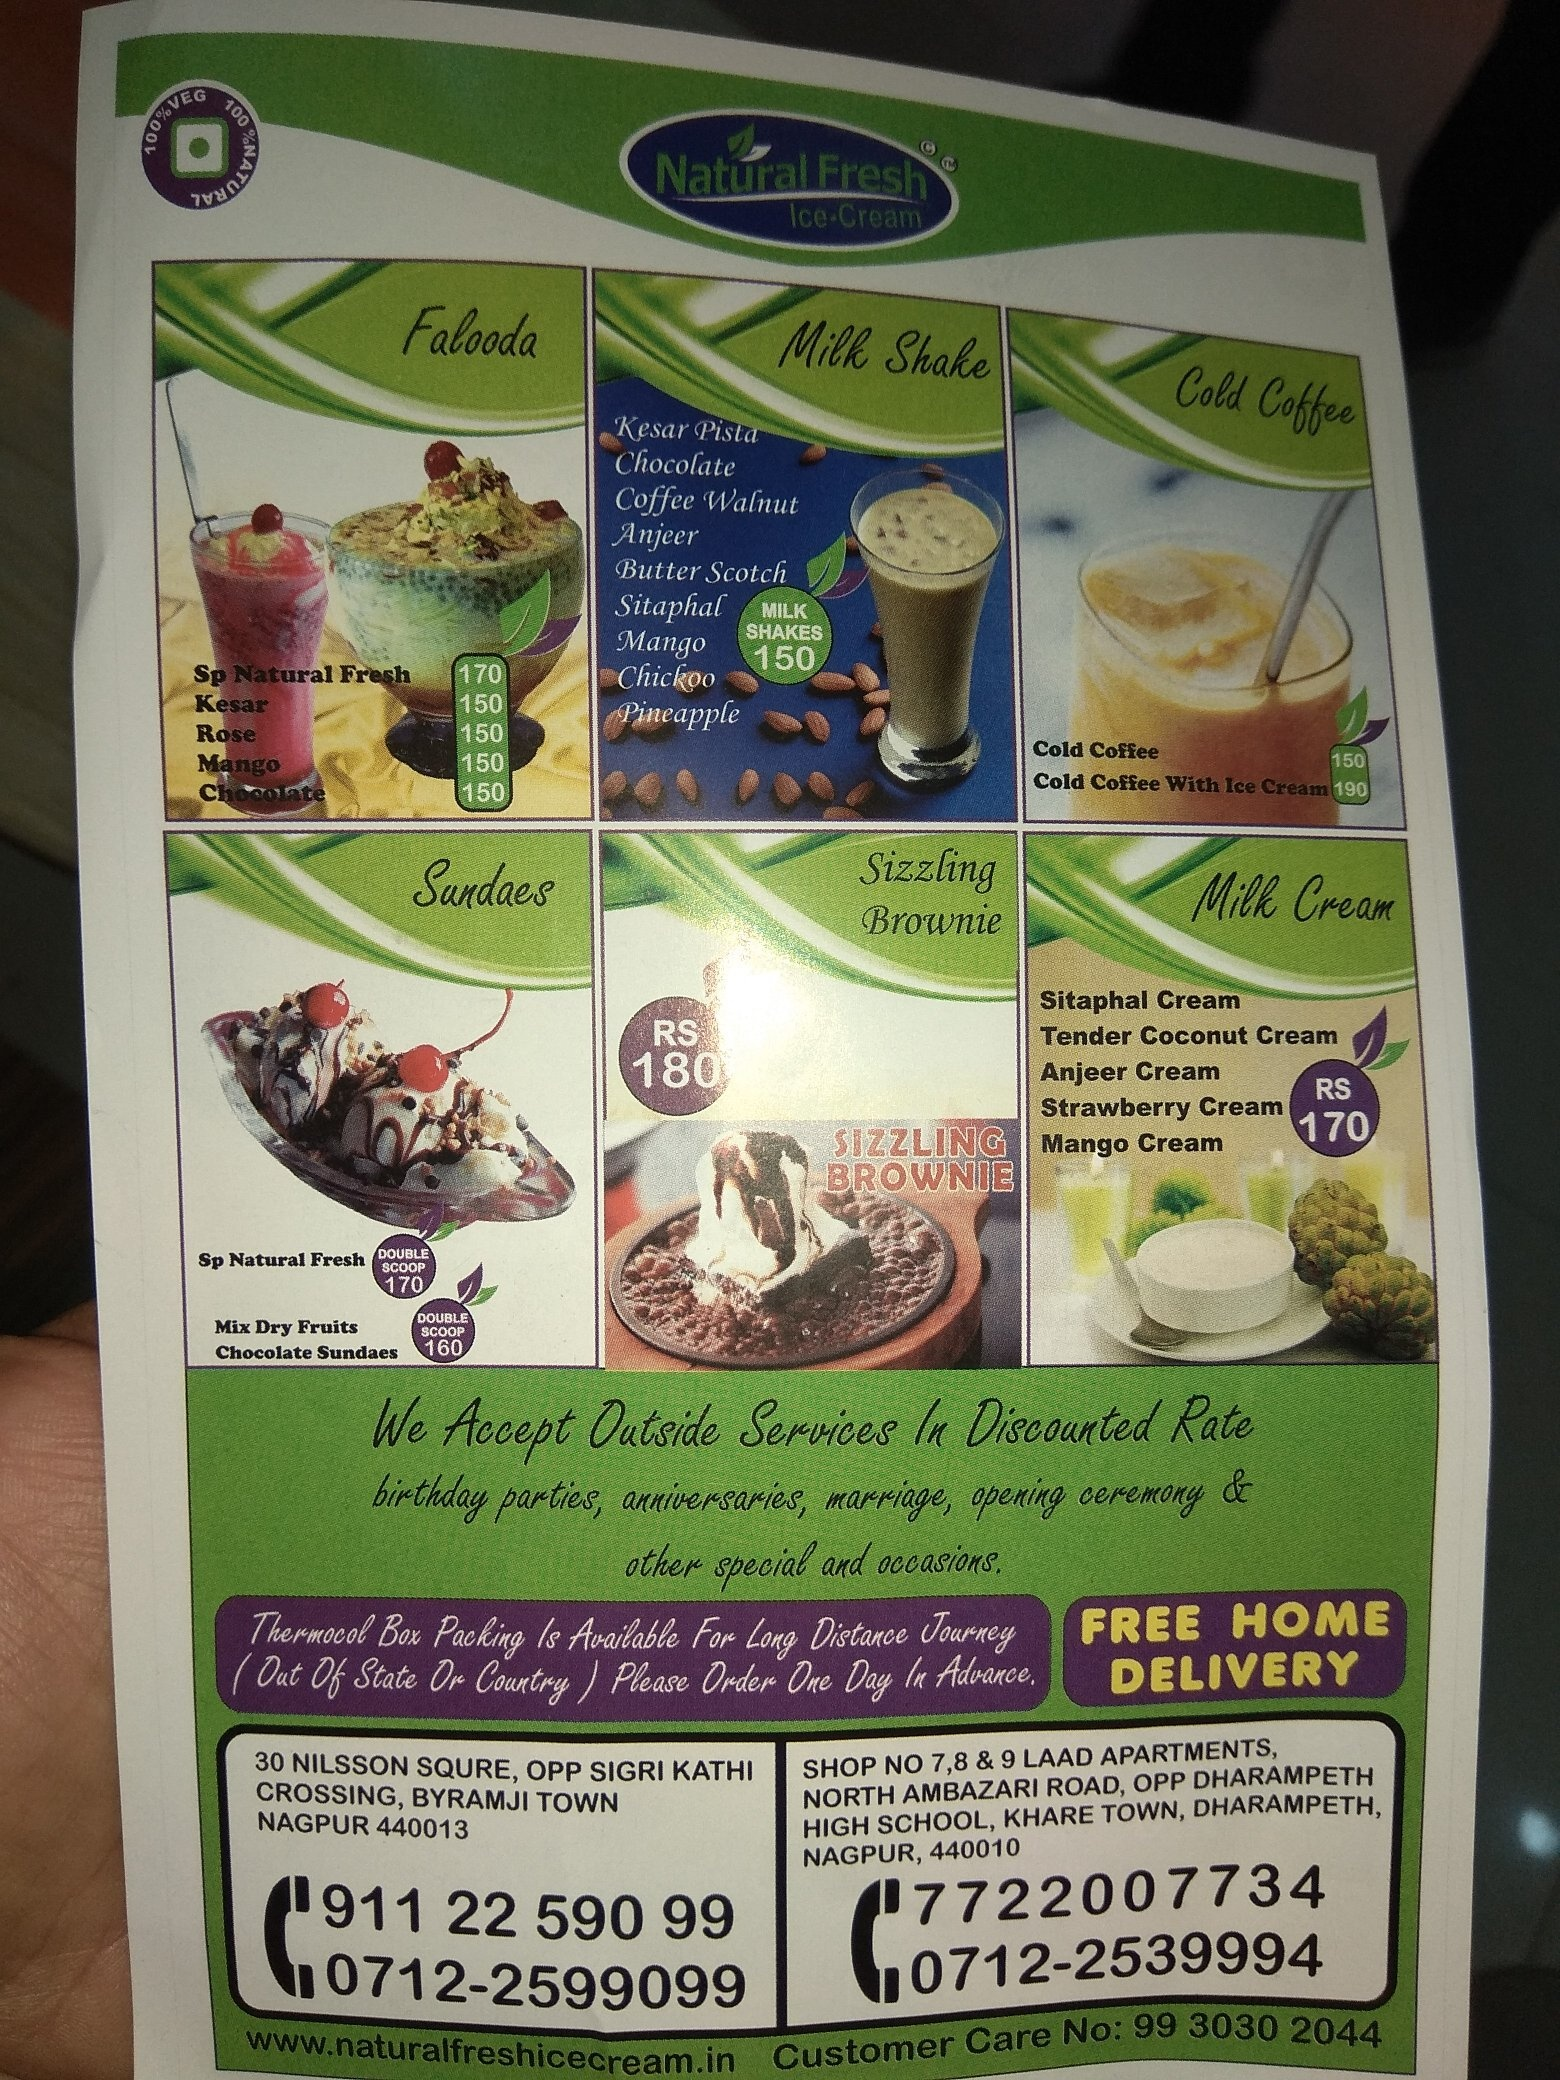 Where Can I Get Naturals Ice Cream In Nagpur Quora